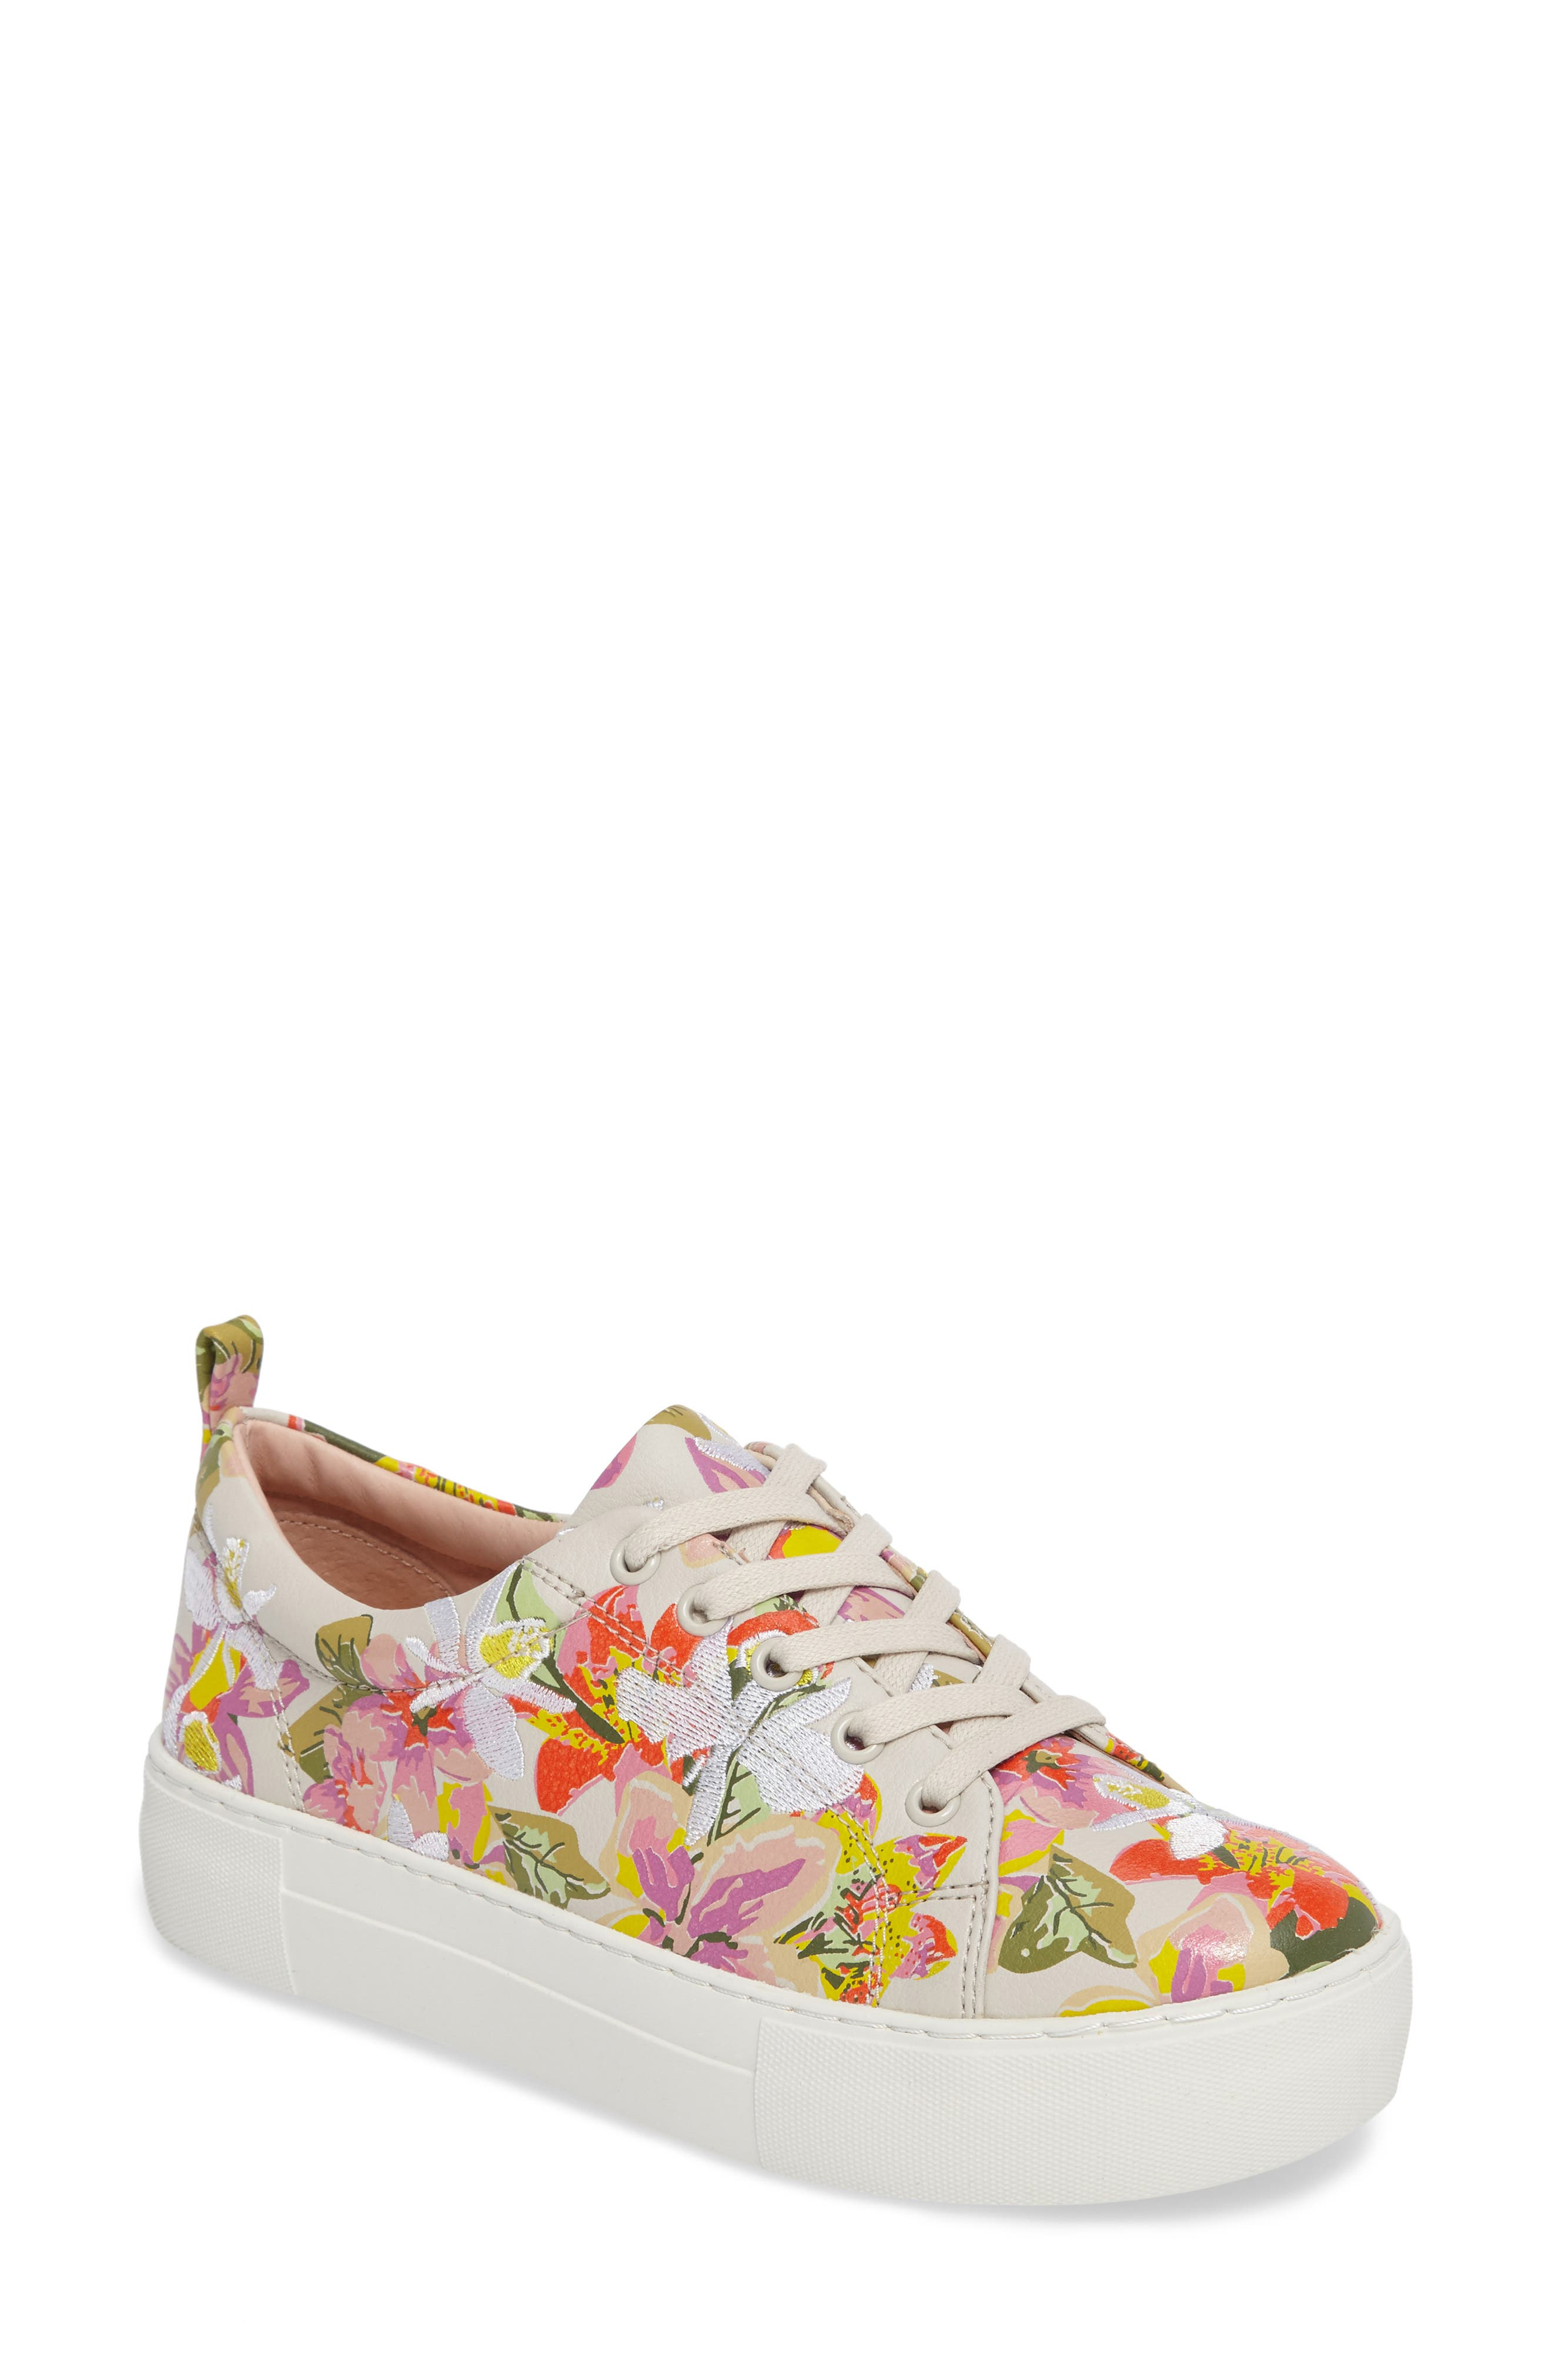 Appy Embroidered Platform Sneaker,                         Main,                         color, Pink Multi Fabric